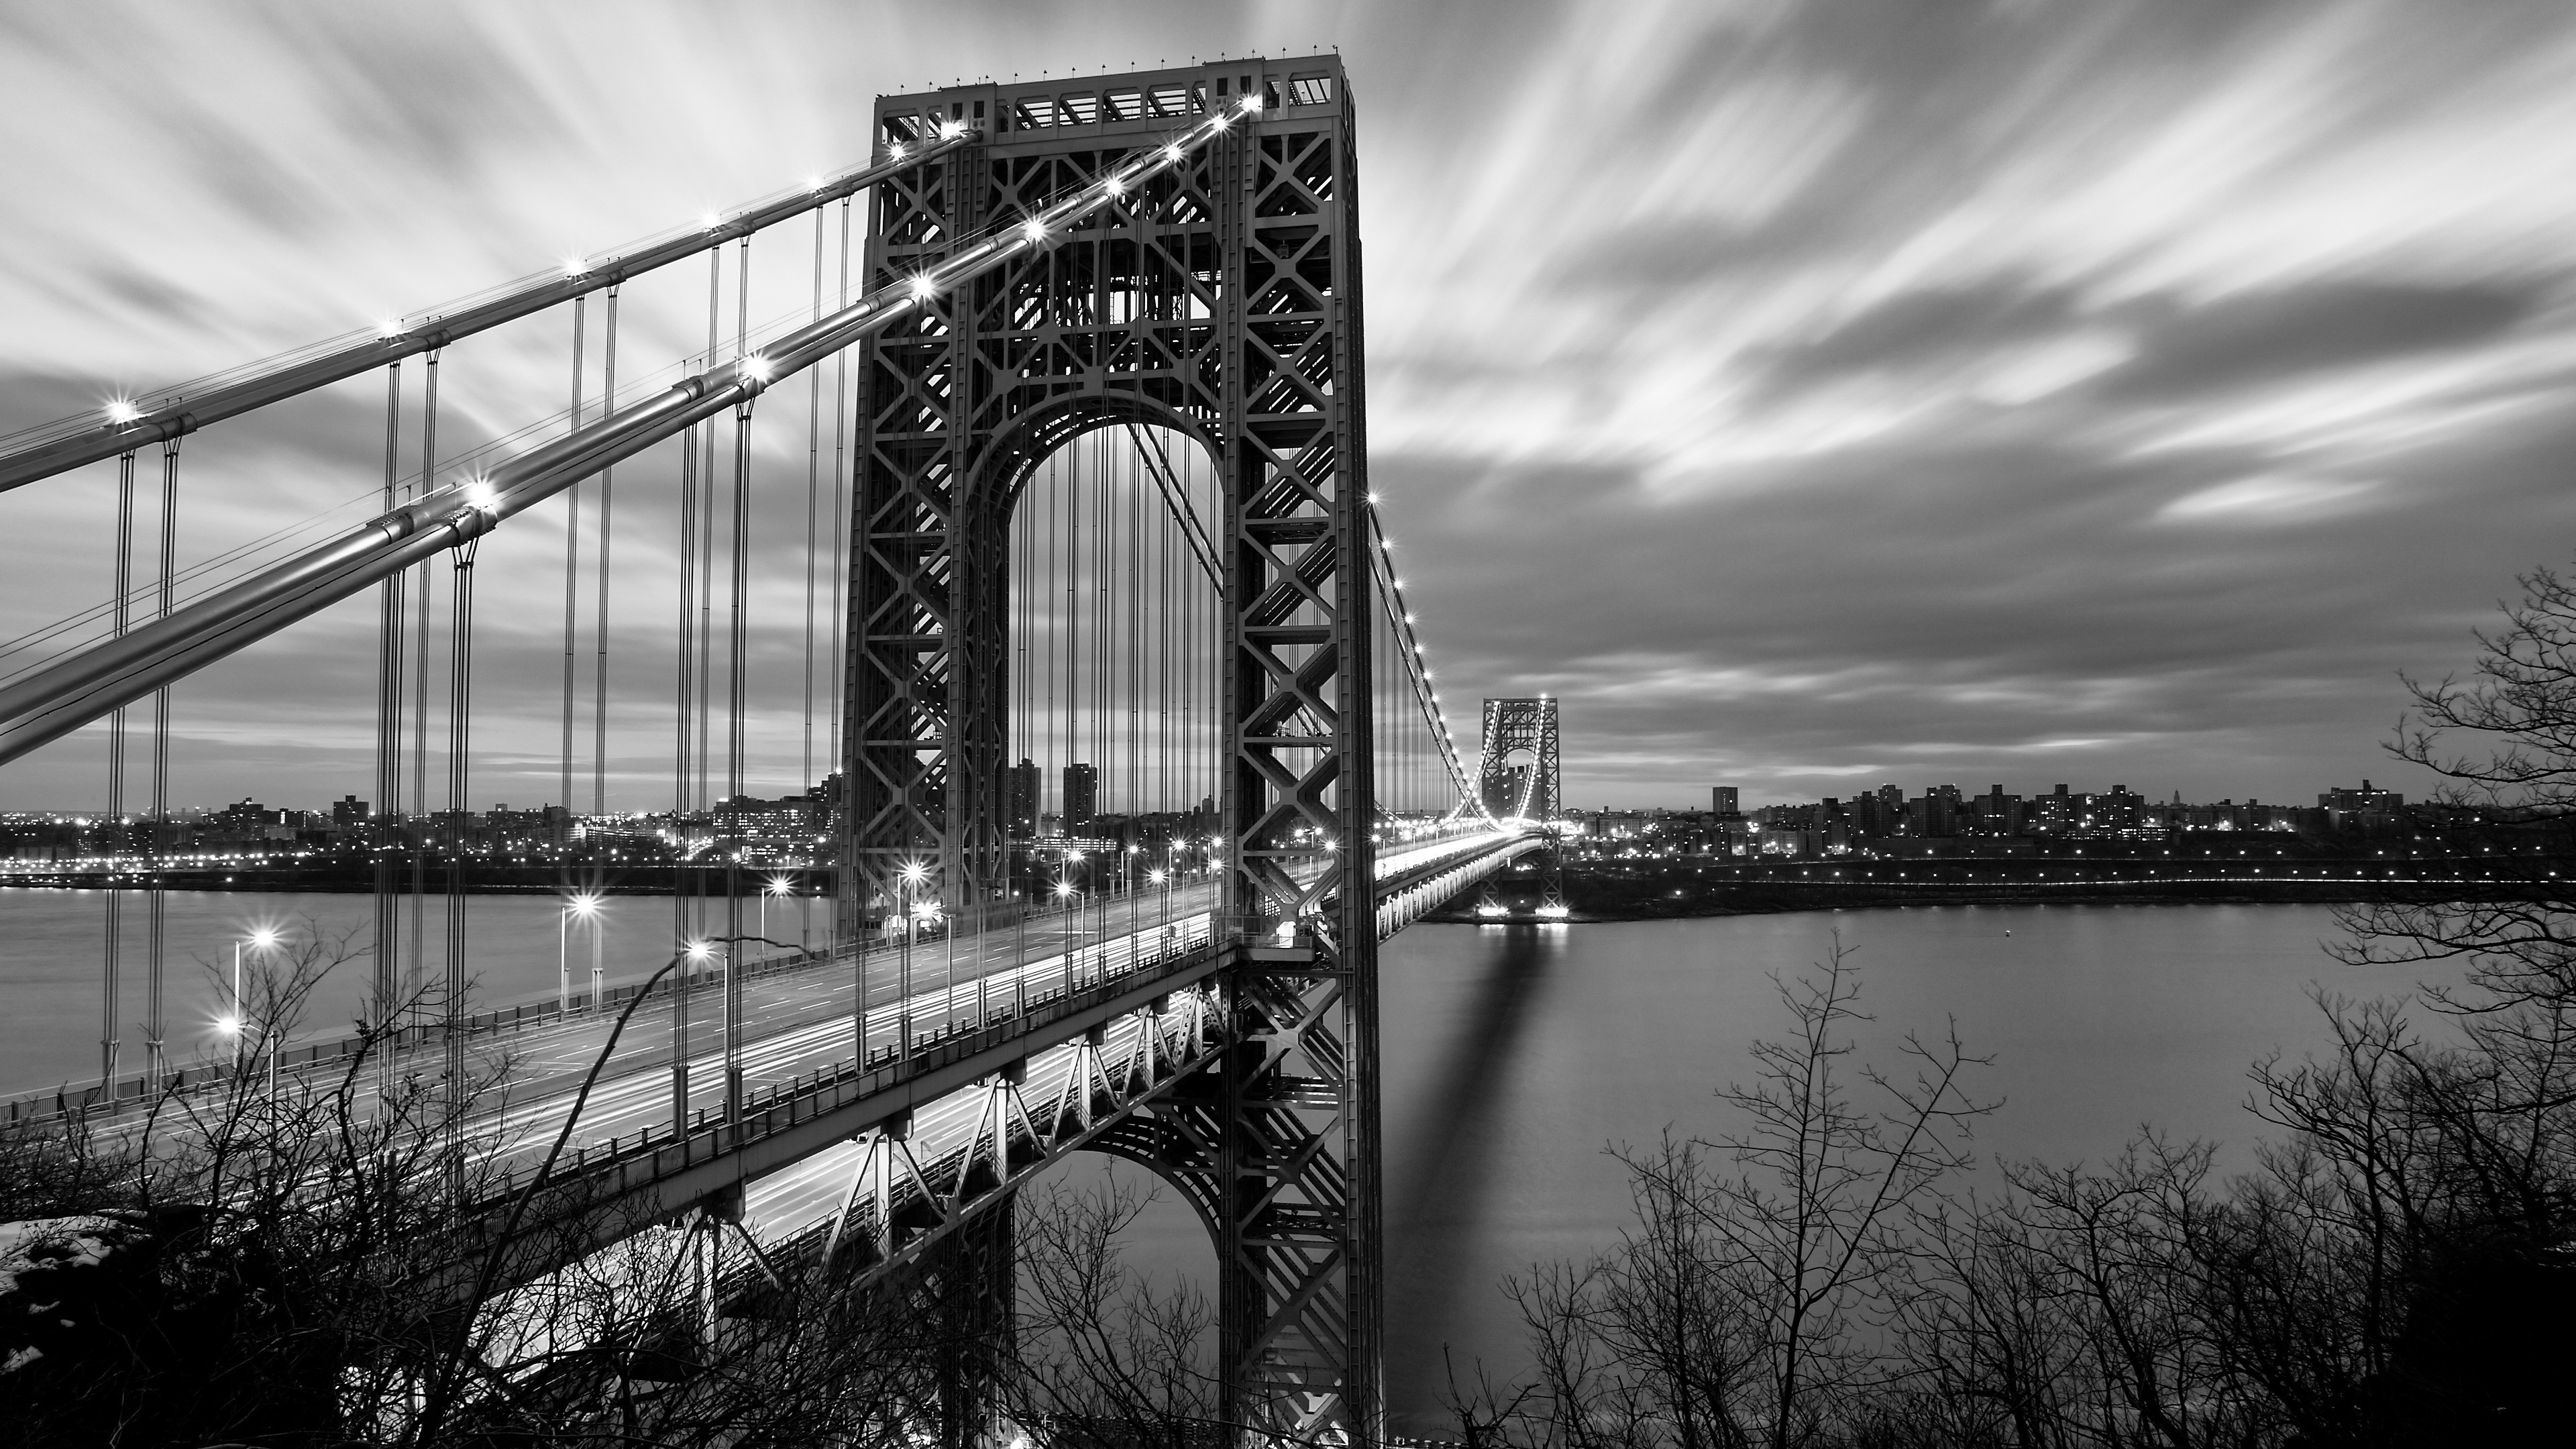 bridge black and white hd photography 4k wallpapers